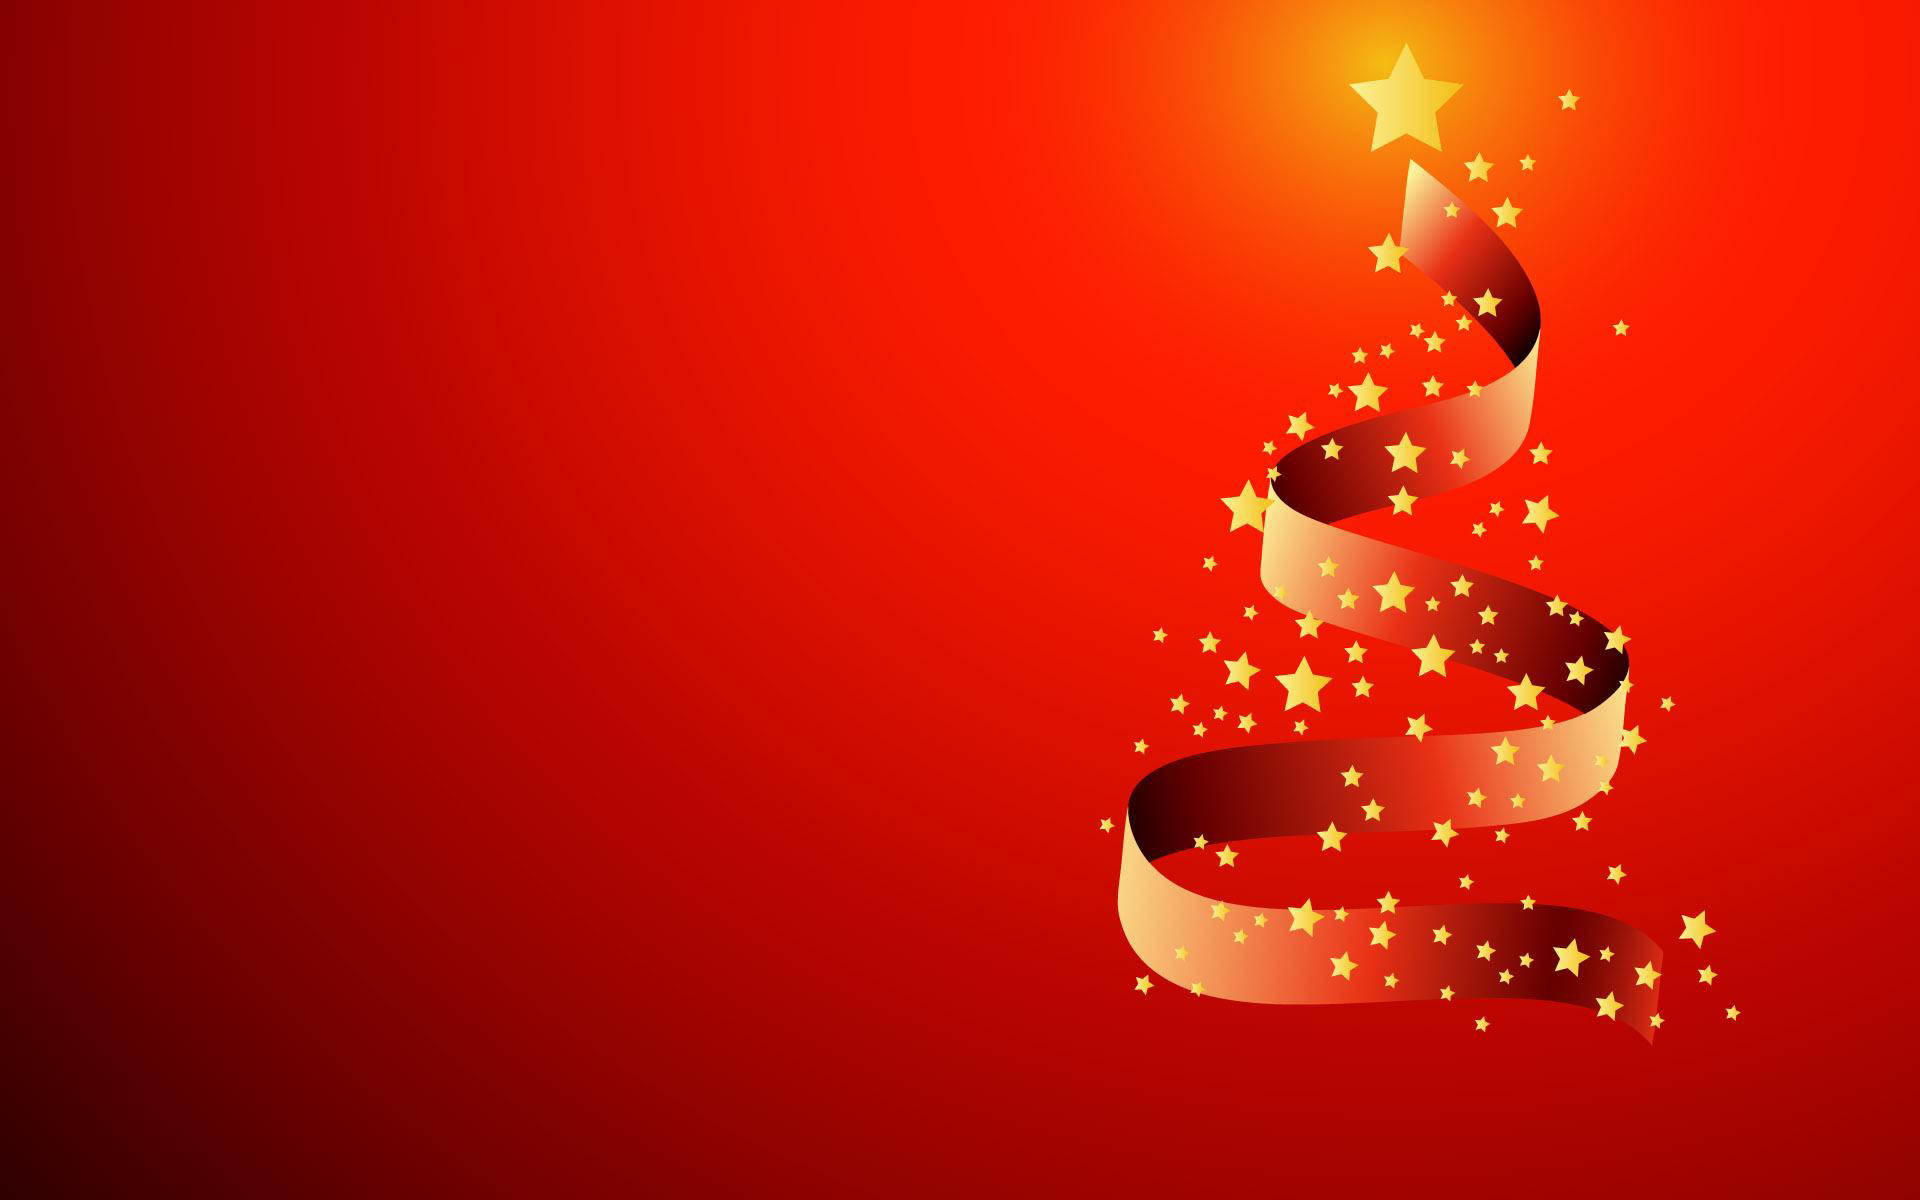 1920x1200 3D Holidays Background Christmas Wallpapers